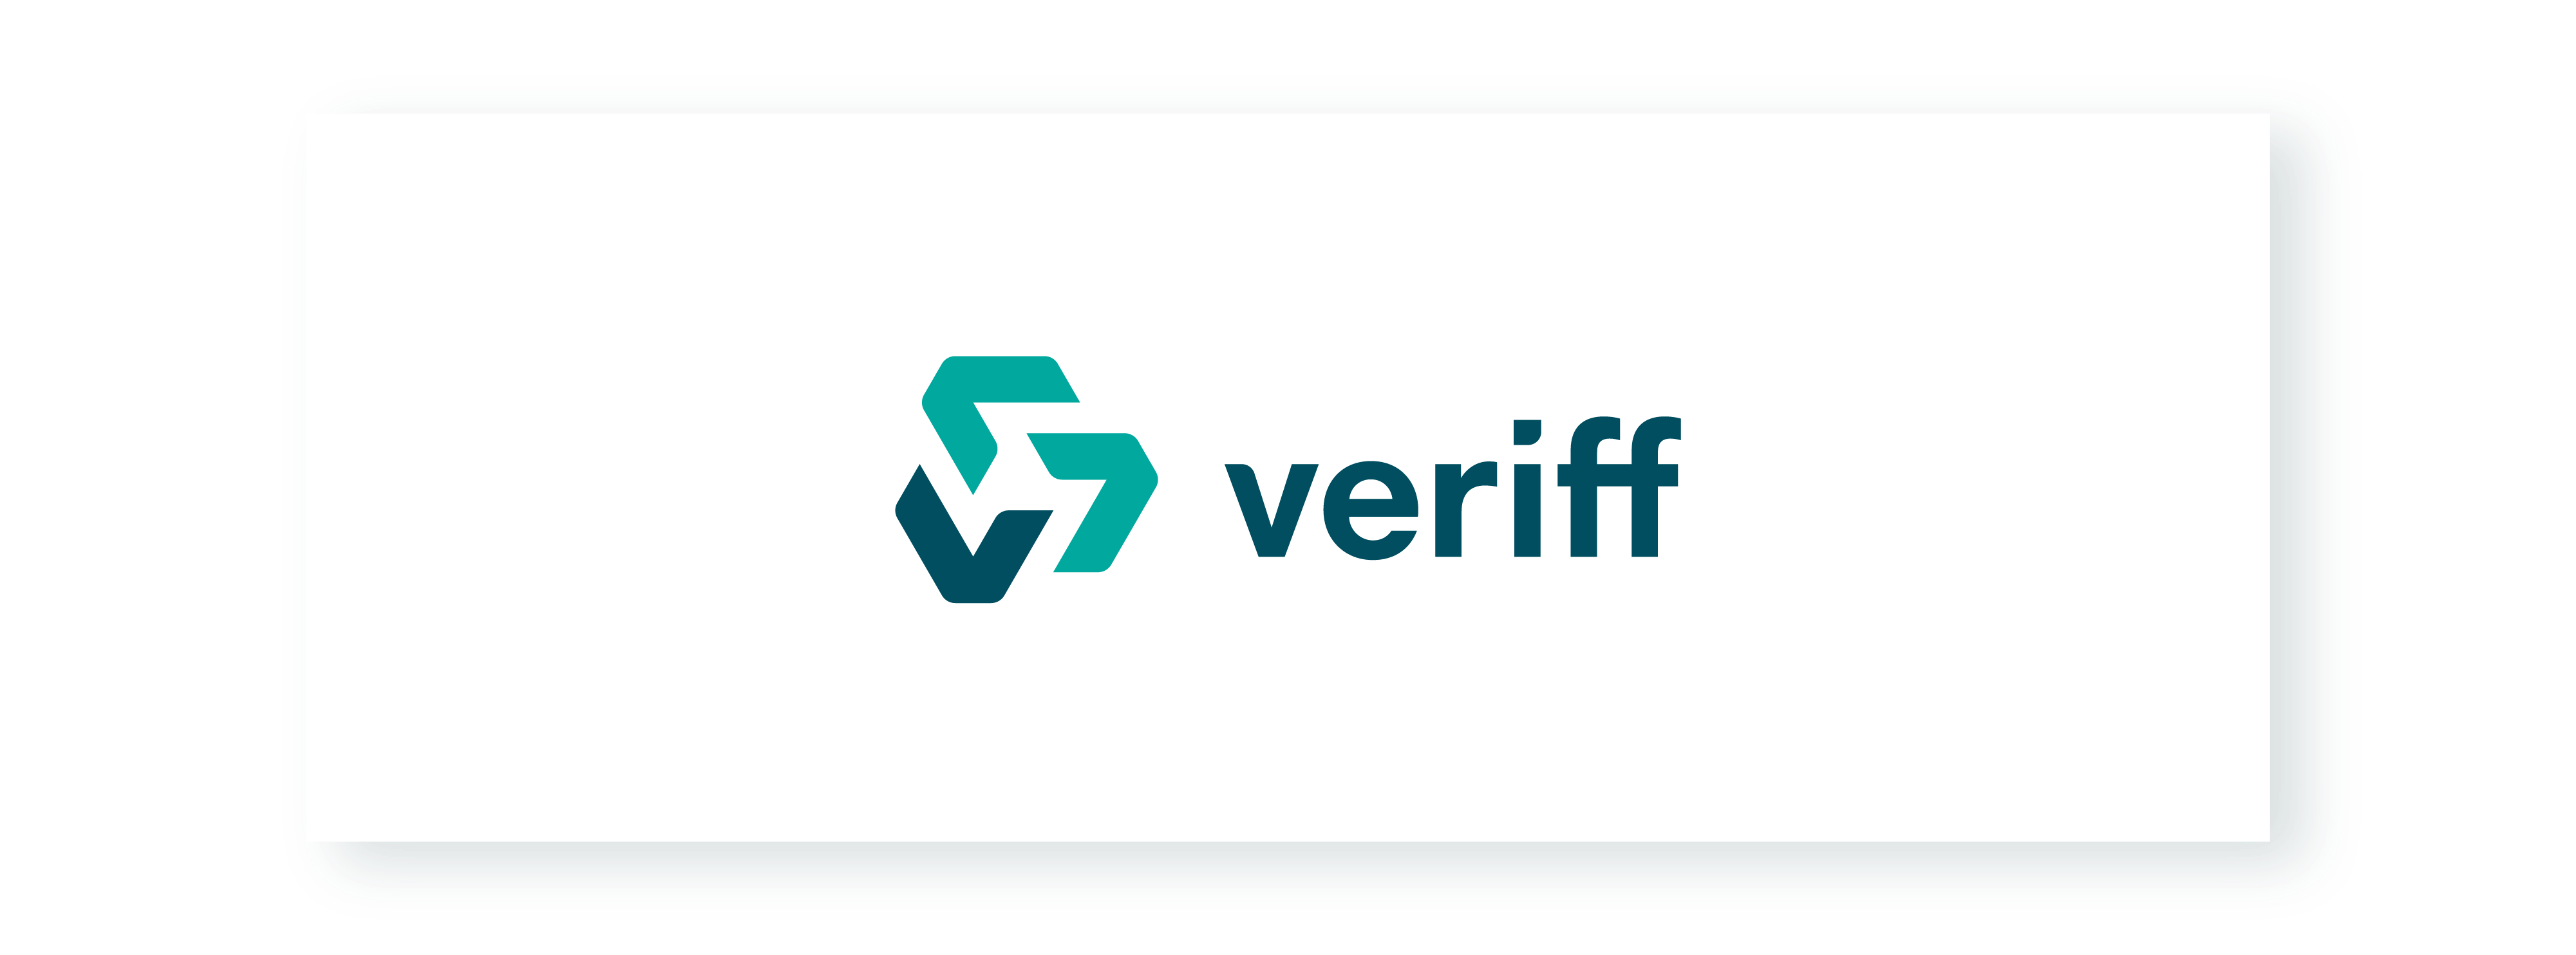 Veriff logo